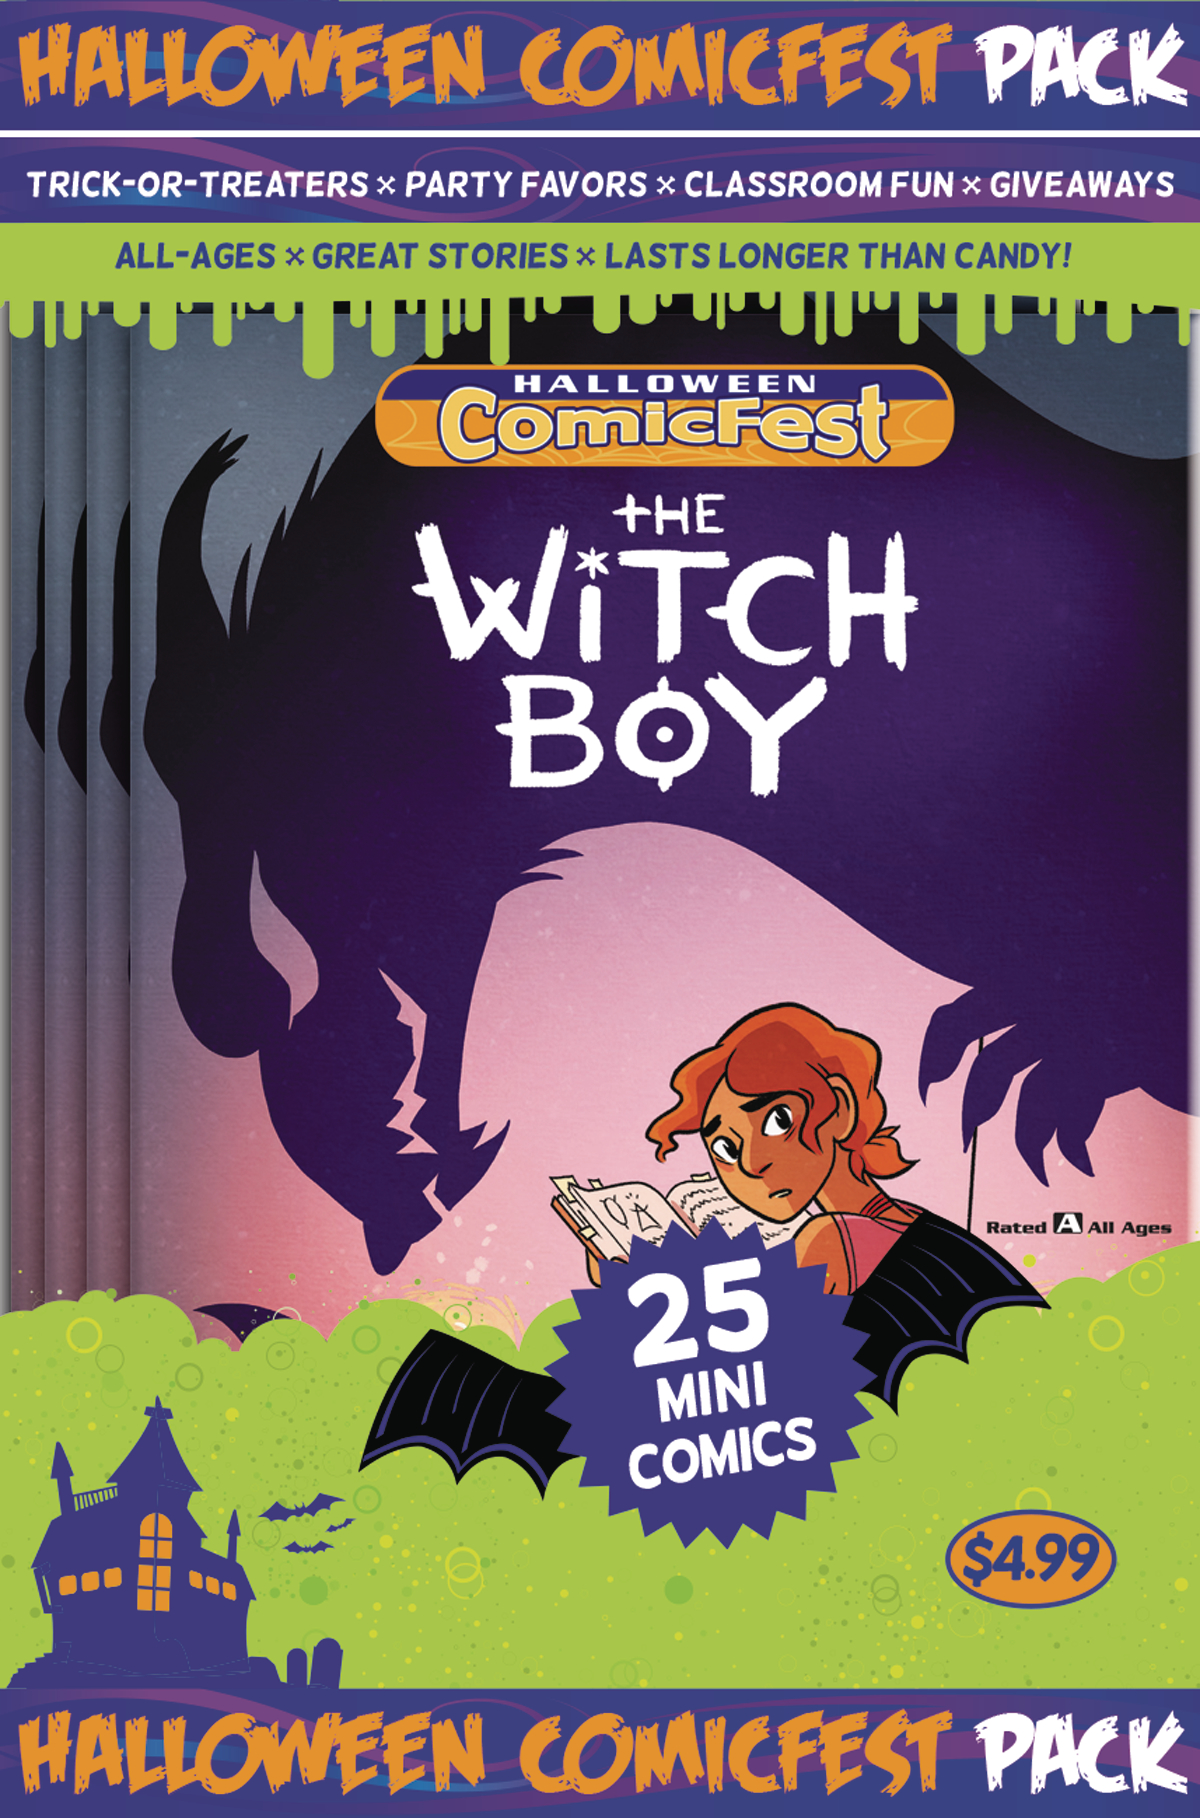 HCF 2017 WITCH BOY MINI COMIC POLYPACK